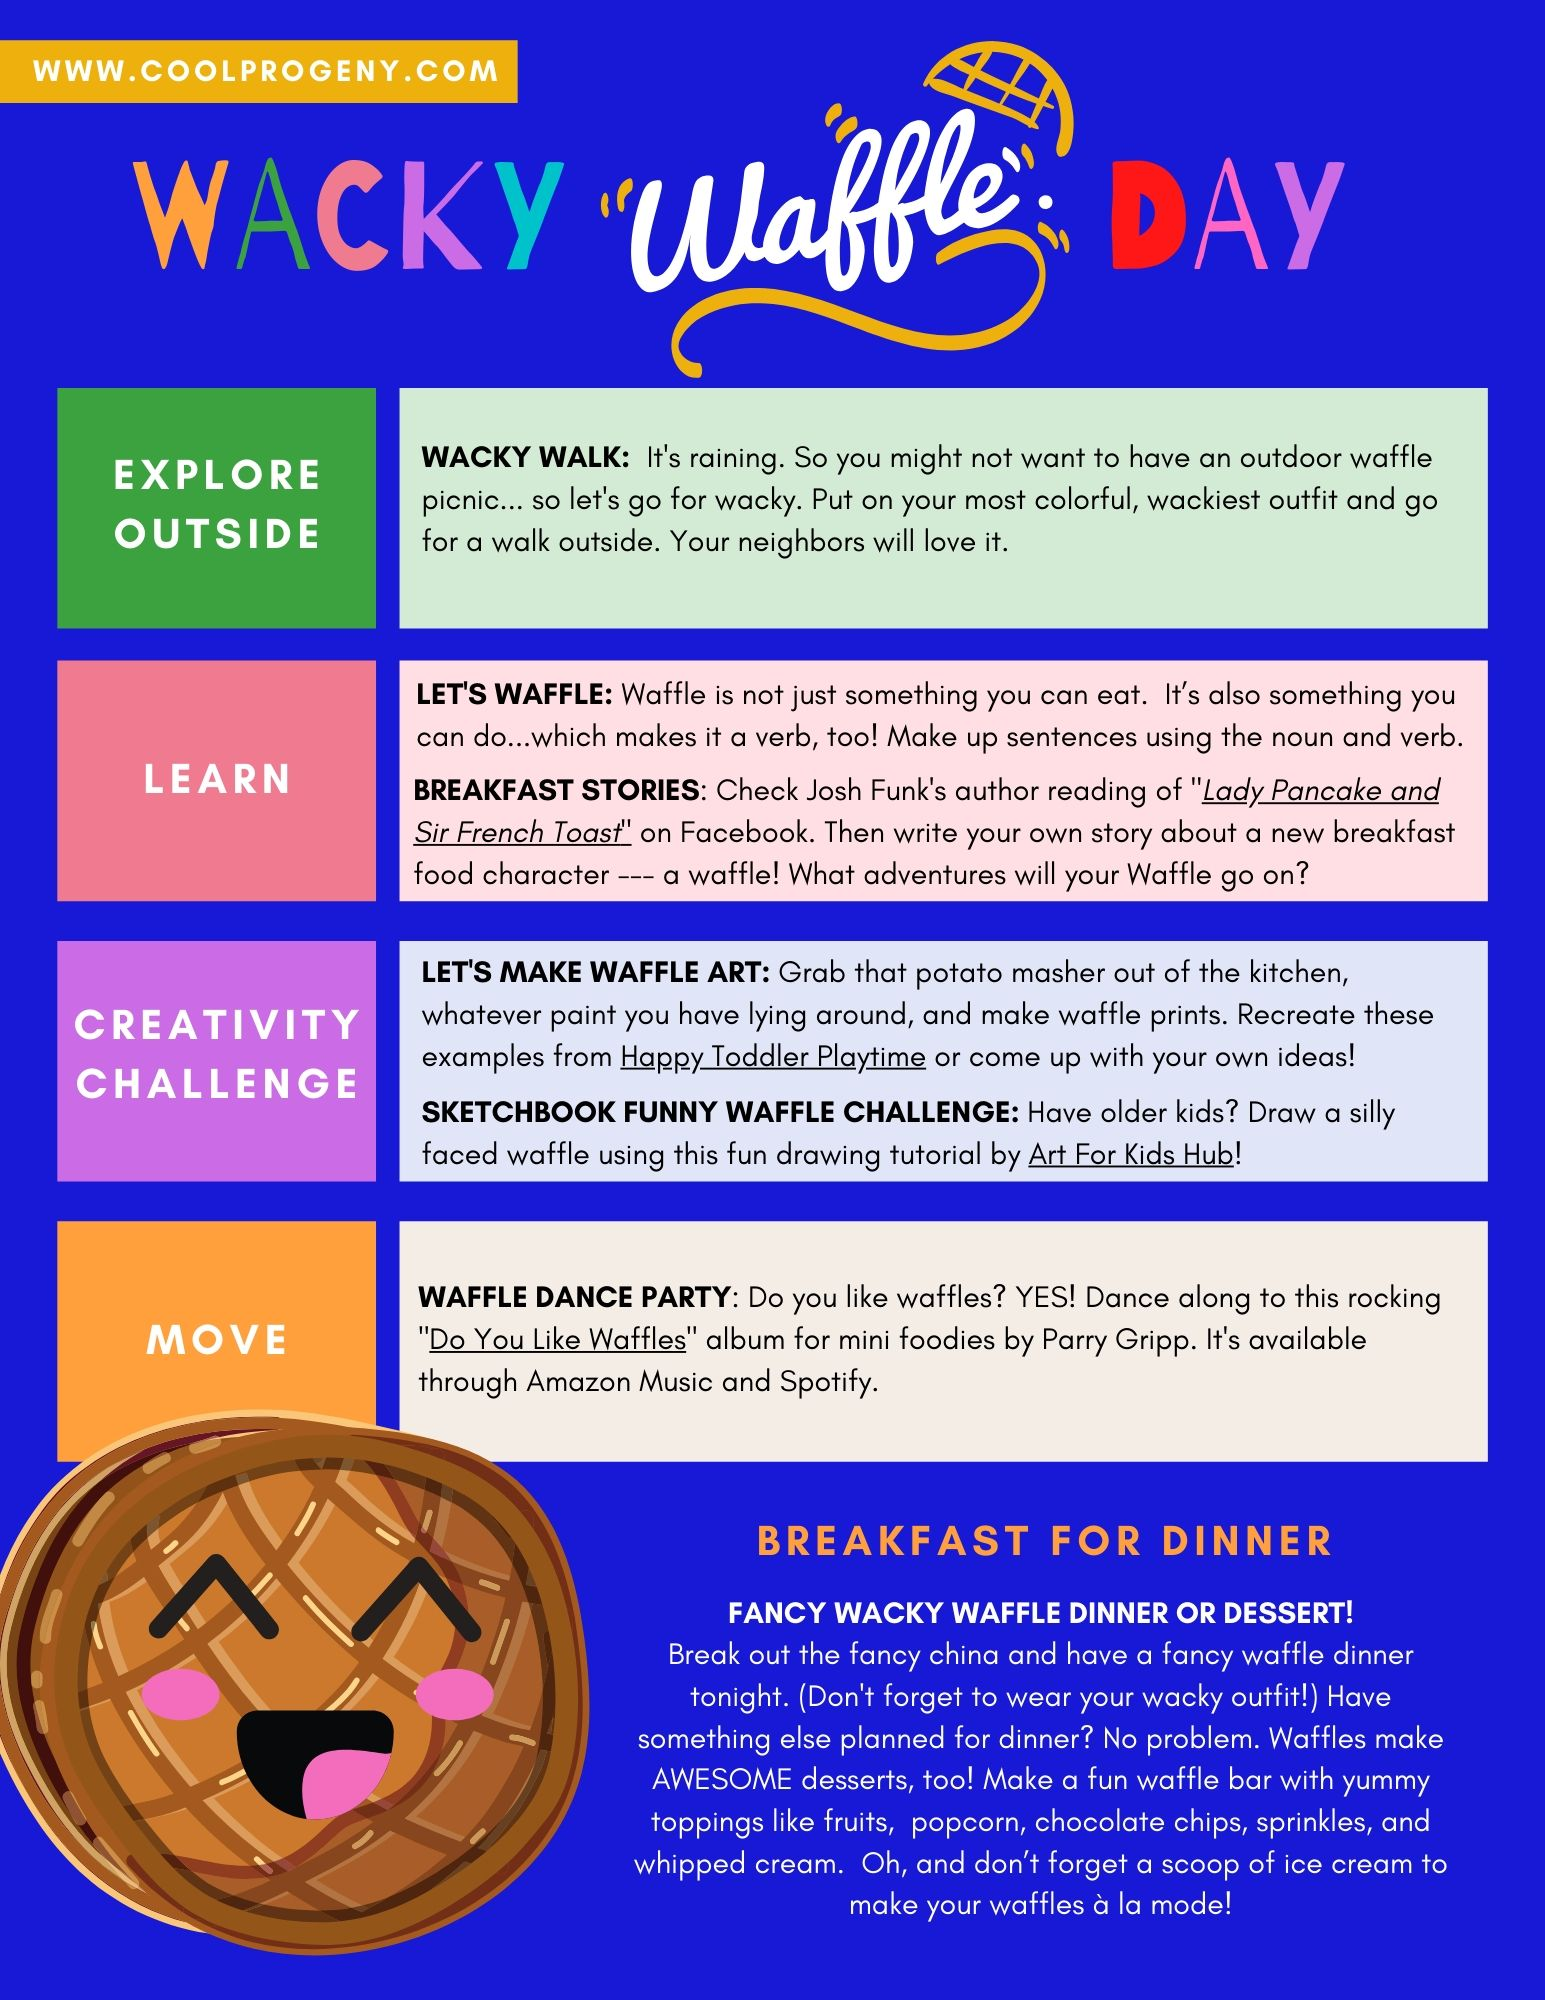 Cool Fun at Home: Wacky Waffle Day - (cool) progeny